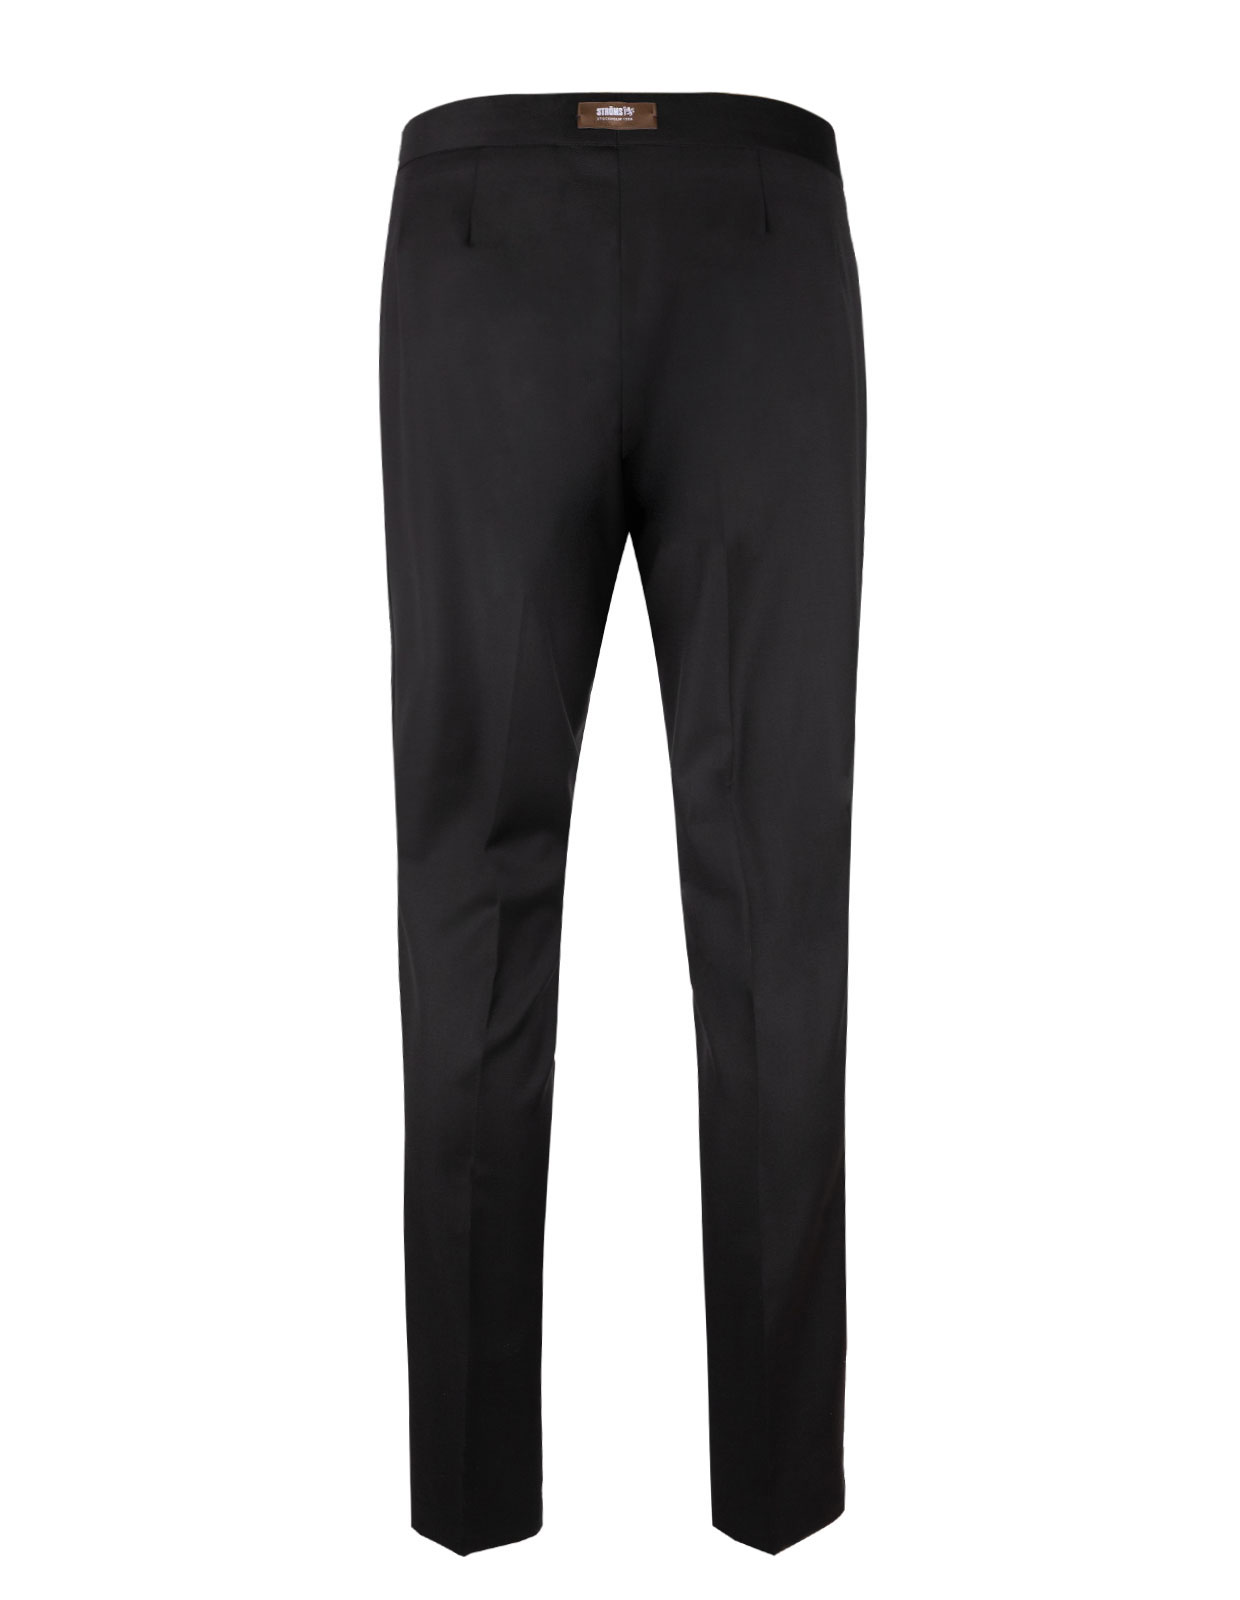 Tuxedo Trouser Mix & Match Black